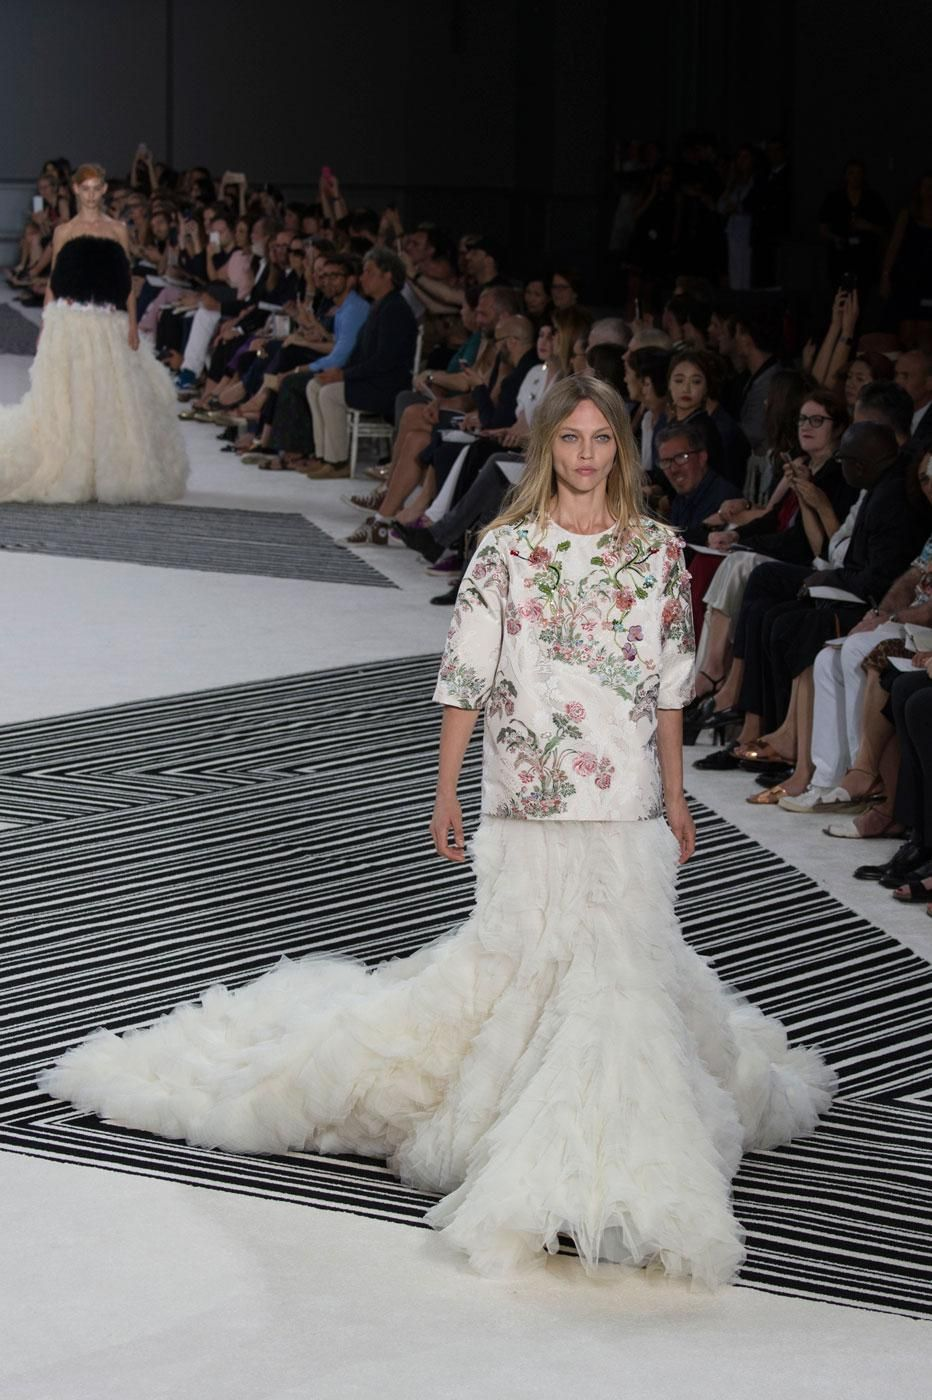 The Best Gowns From Paris Couture Week Fall 2015 - Giambattista Valli | StyleCaster